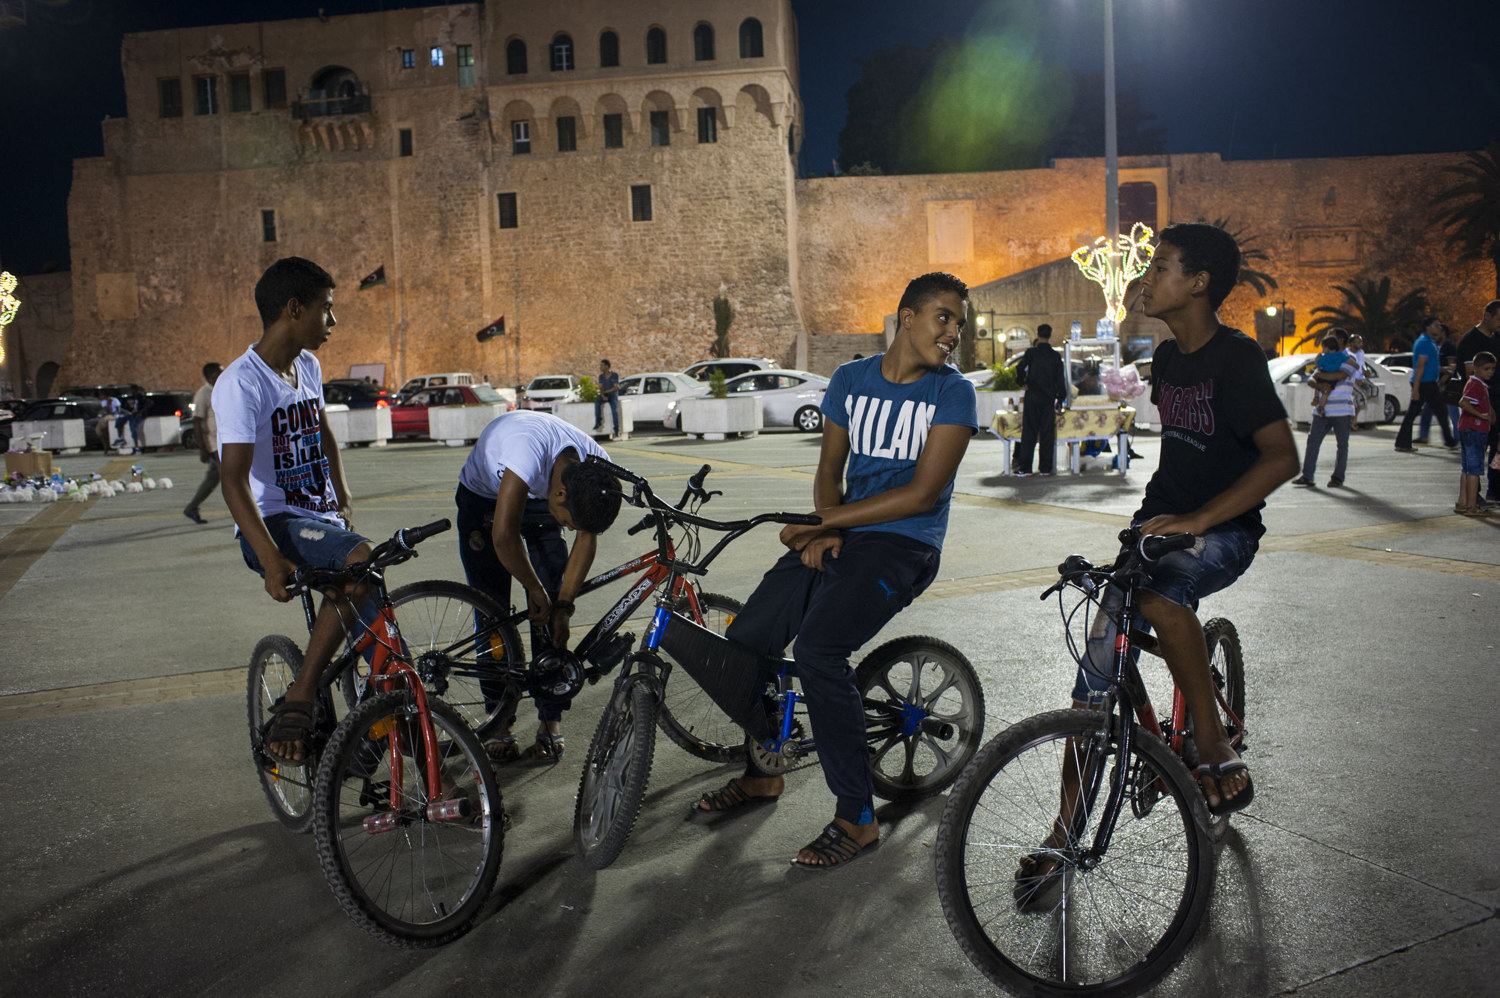 Young boys on bikes in Martyr Square in Tripoli, Libya. 42 years after the reign of Col. Muammar Gaddafi and a violent civil war Libya is waking up to a new and free country. With civil services and the countries infrastructure in ruins Libyans struggle with the transition period from dictatorship to democracy.